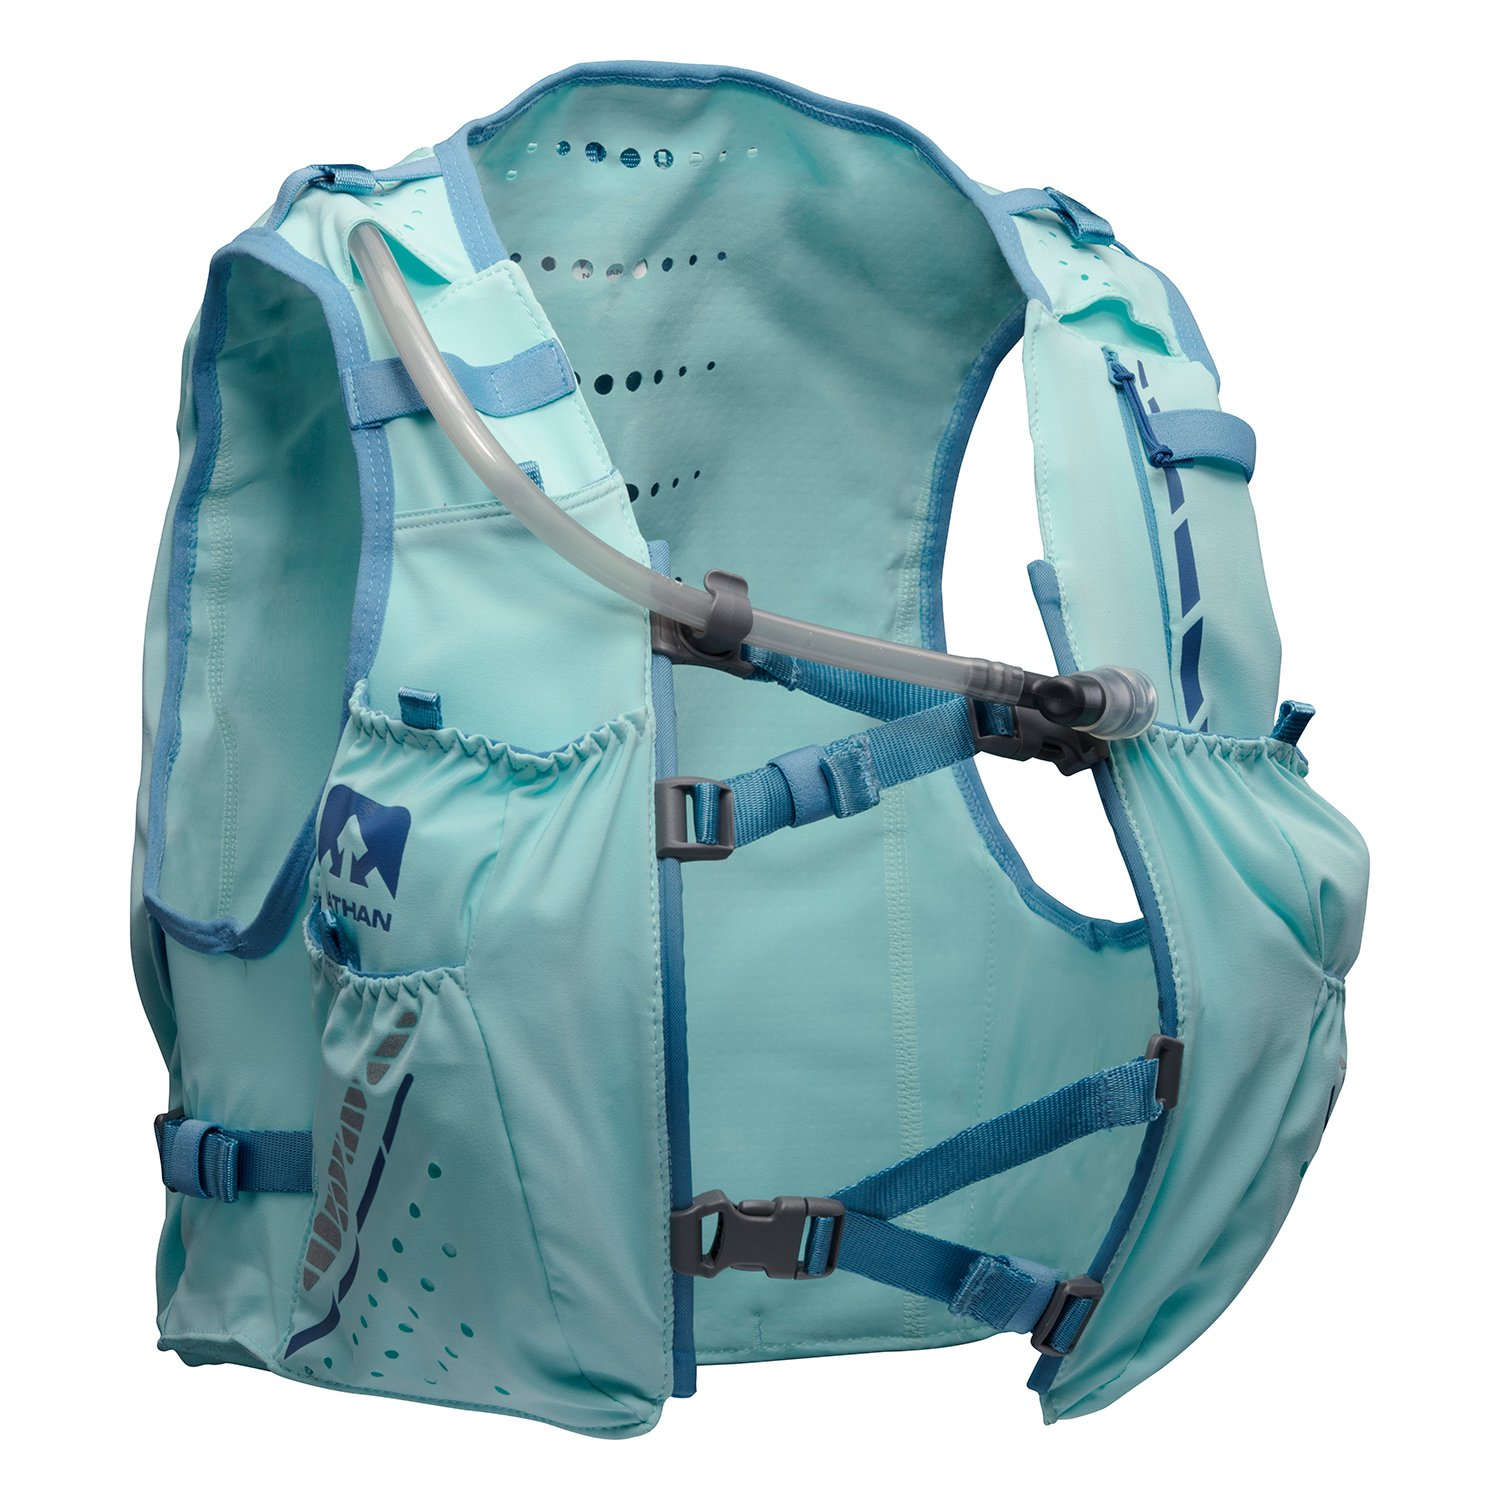 Nathan NS4538 Vaporhowe Hydaration Pack Running Vest with 1.8L Bladder, Blue Radiance, XX-Small